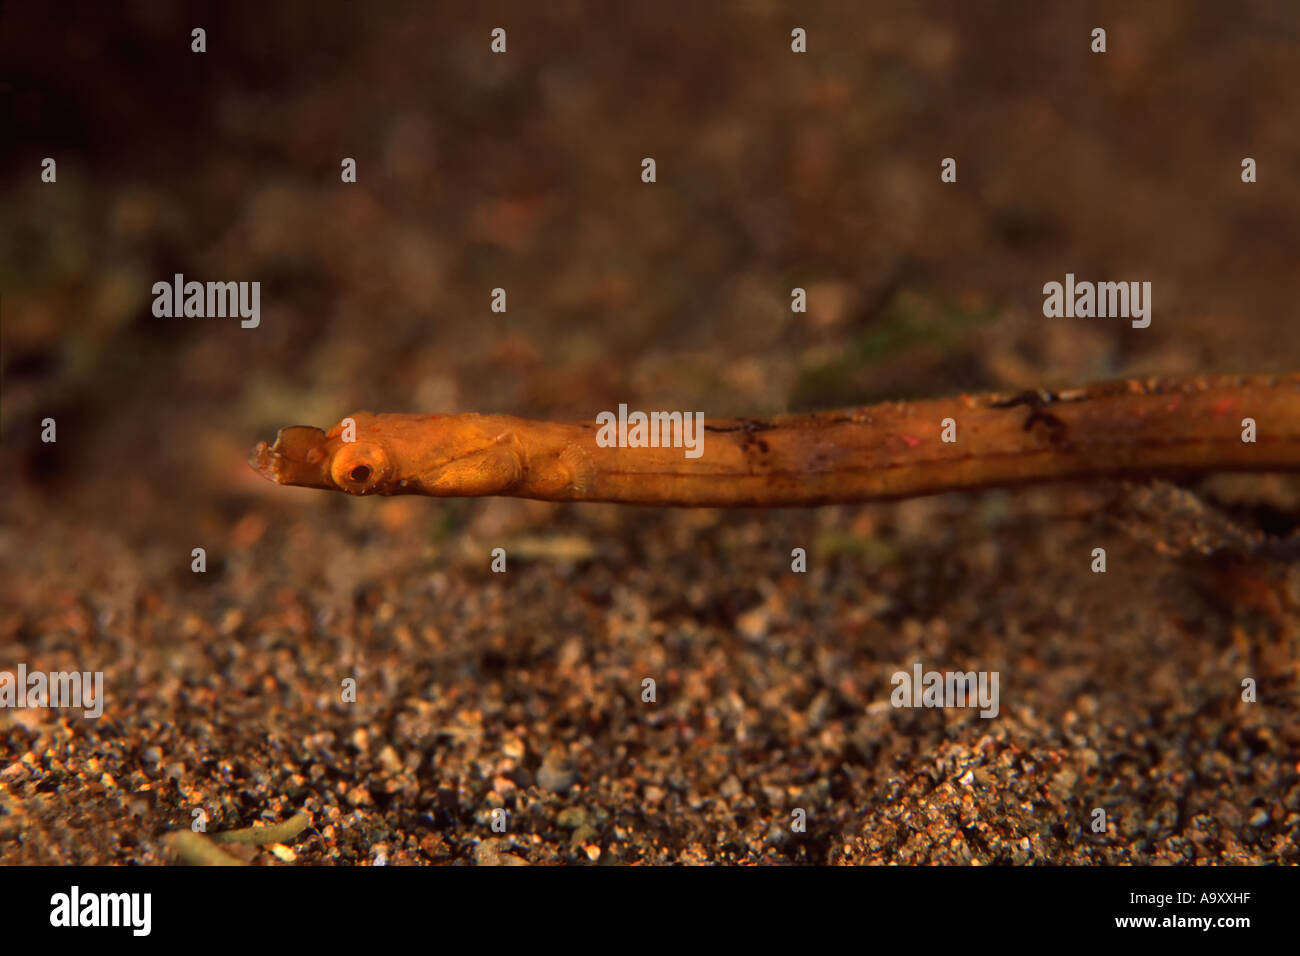 Spiny Snout Pipefish - Stock Image